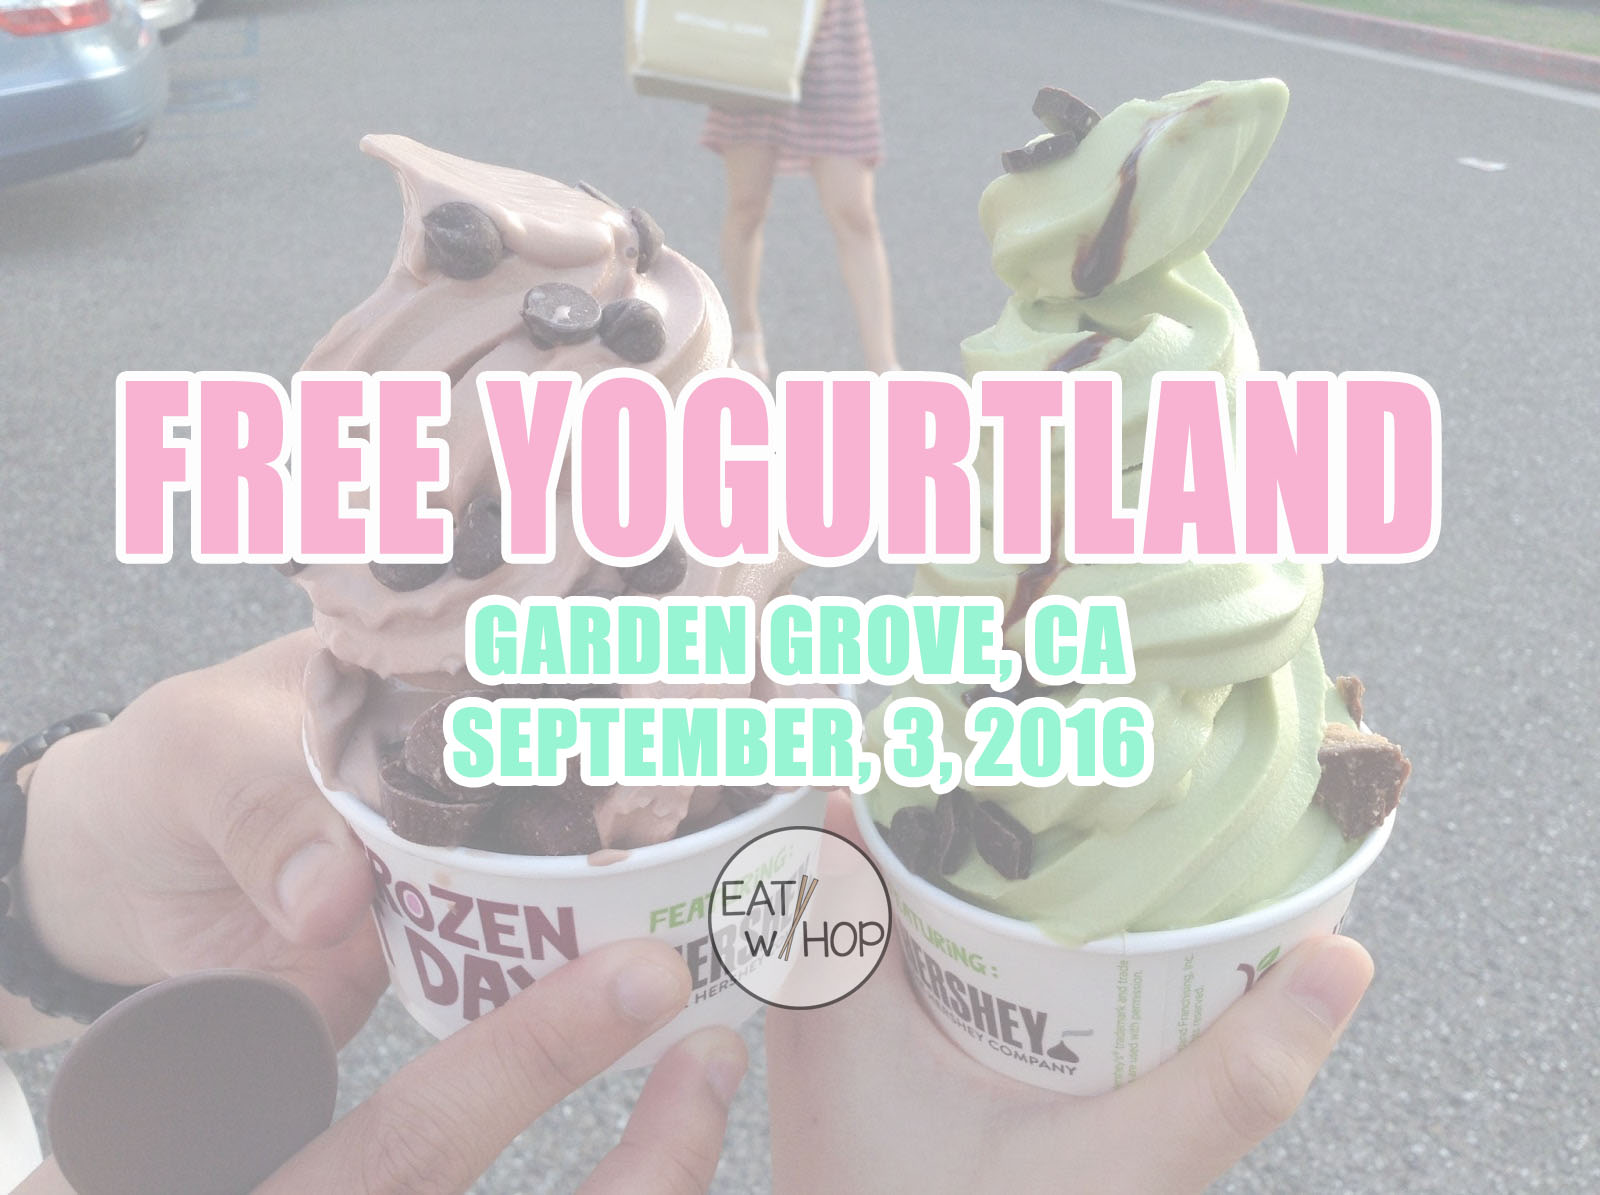 GARDEN GROVE YOGURTLAND THANKS GUESTS WITH FREE YOGURT ON SEPT. 3RD